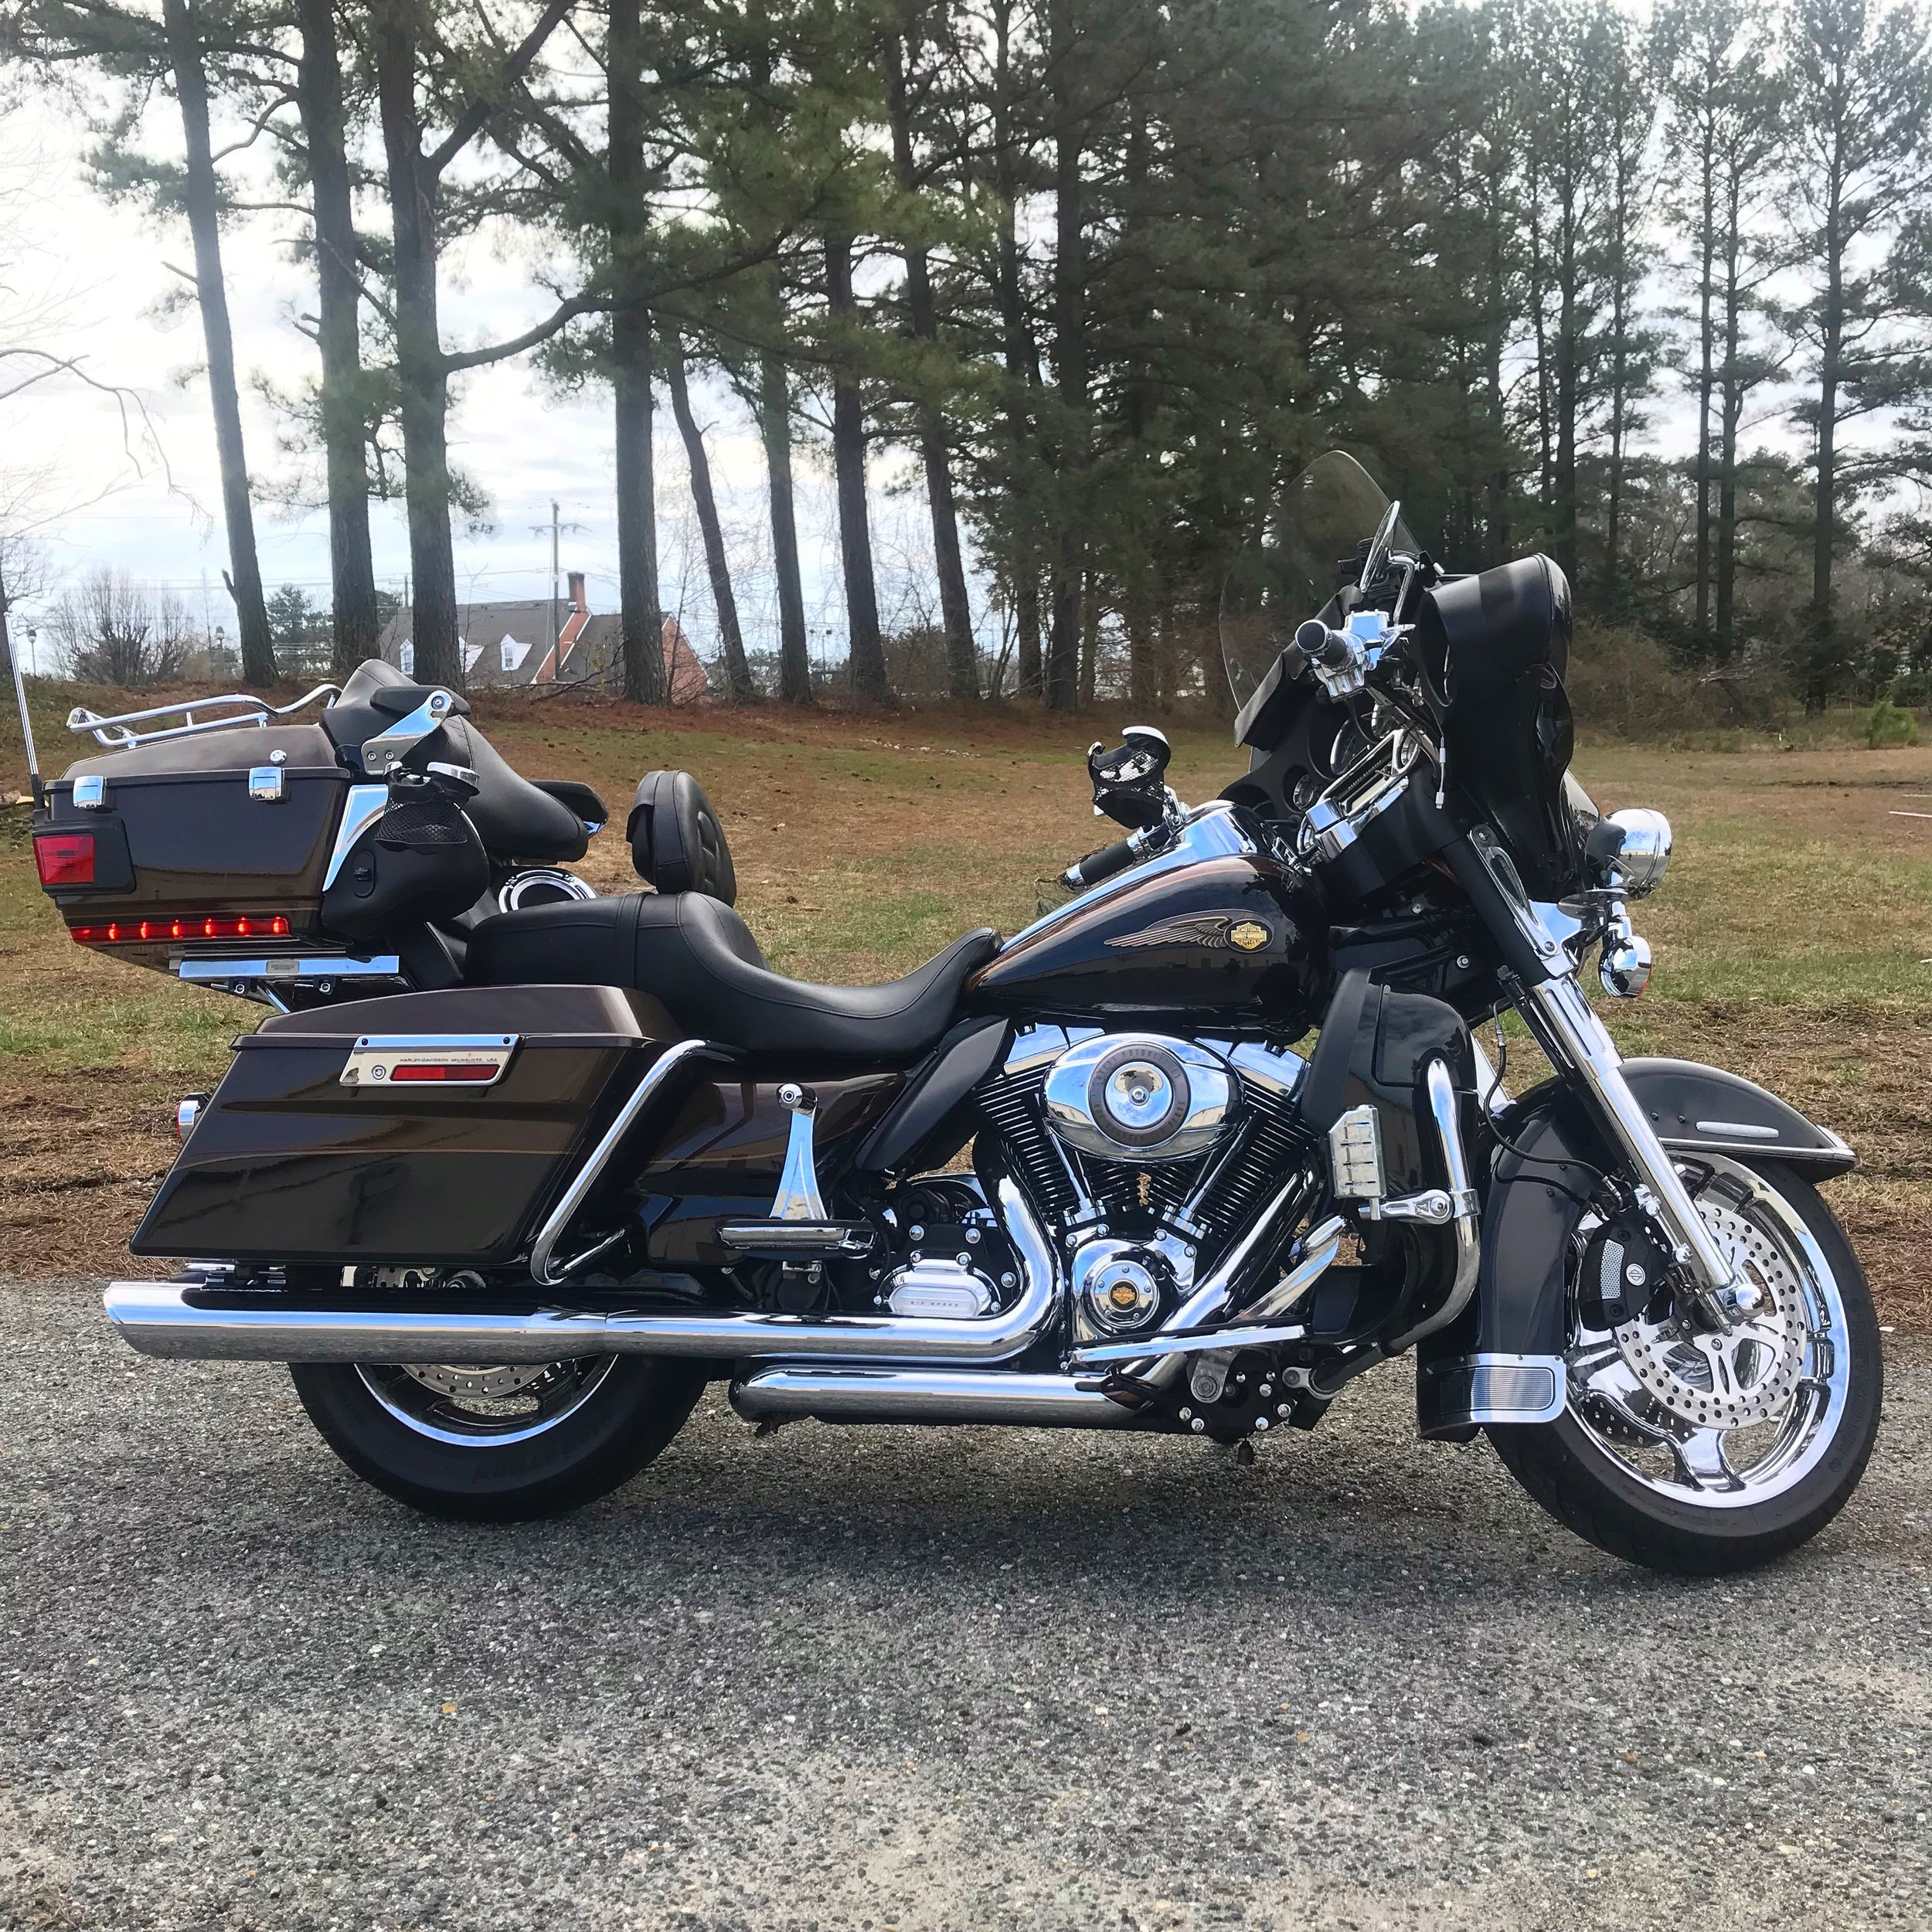 We Service Harley - Factory-Level Service for your Sportster, Dyna, Softail, Tourer, and more.Scheduled MaintenanceOil + Filter ChangesTire ChangesExhaust InstallsStage 1 Installs (exhaust, air cleaner, tuner)Spark Plug Changes& More!We are an authorized Vance & Hines Dealer, along with many other top brands